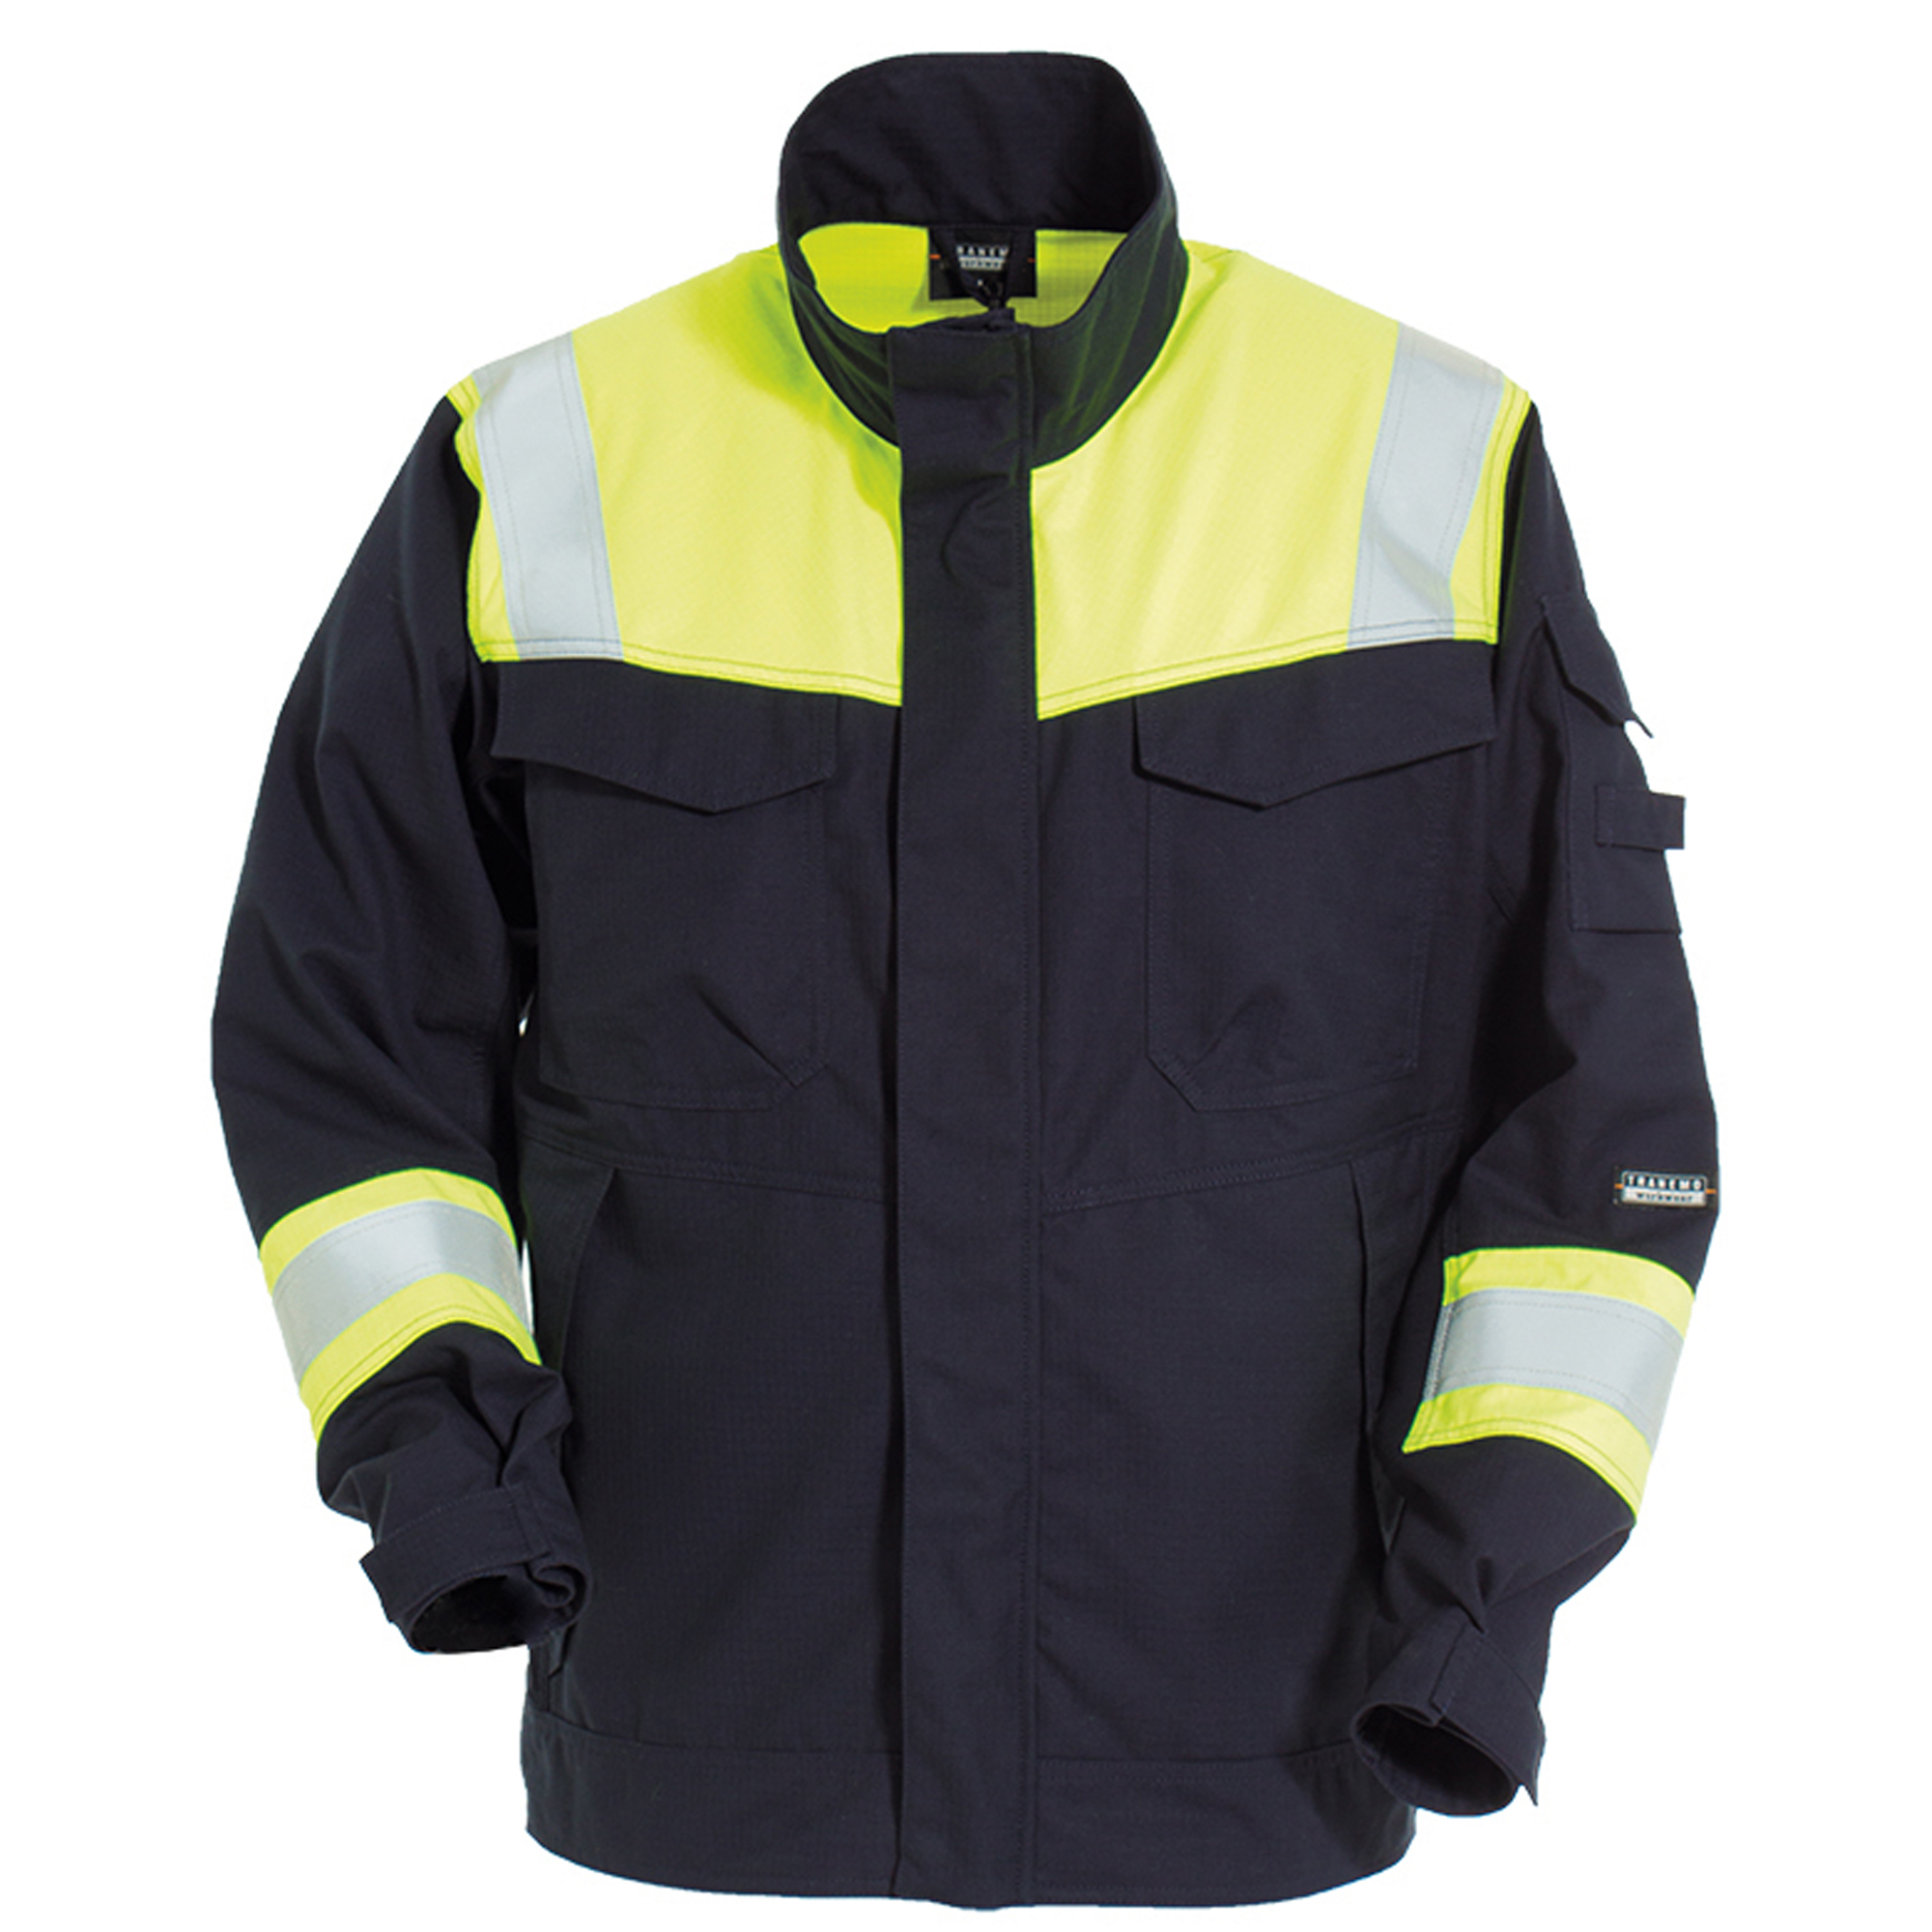 TRANEMO 6030 81 NON-METAL ARC FLASH JACKET - 9.5 CAL/CM²